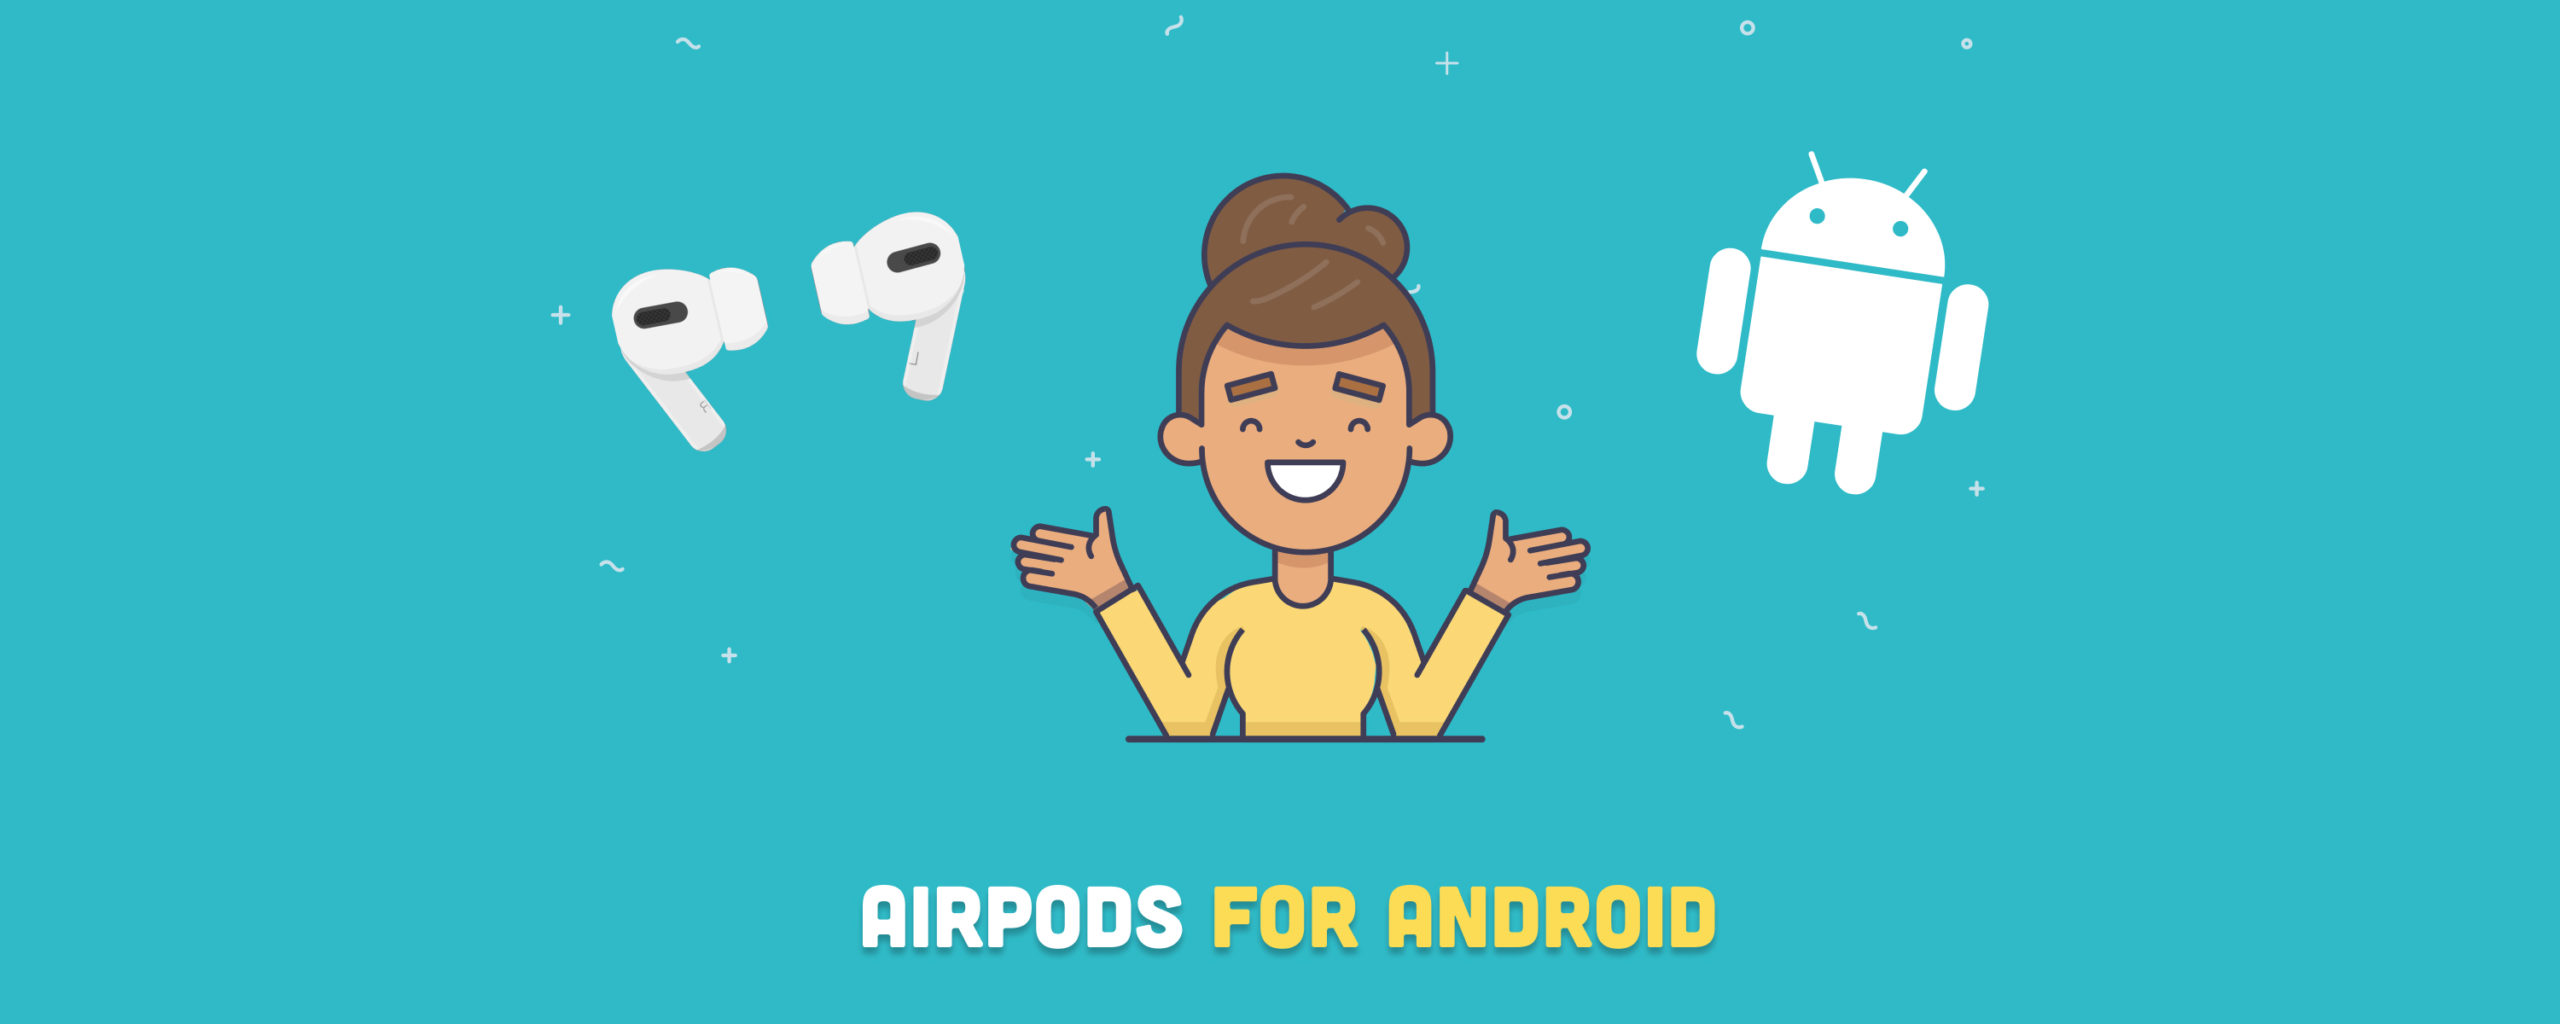 AirPods for Android: Do they work on a Different Ecosystem?